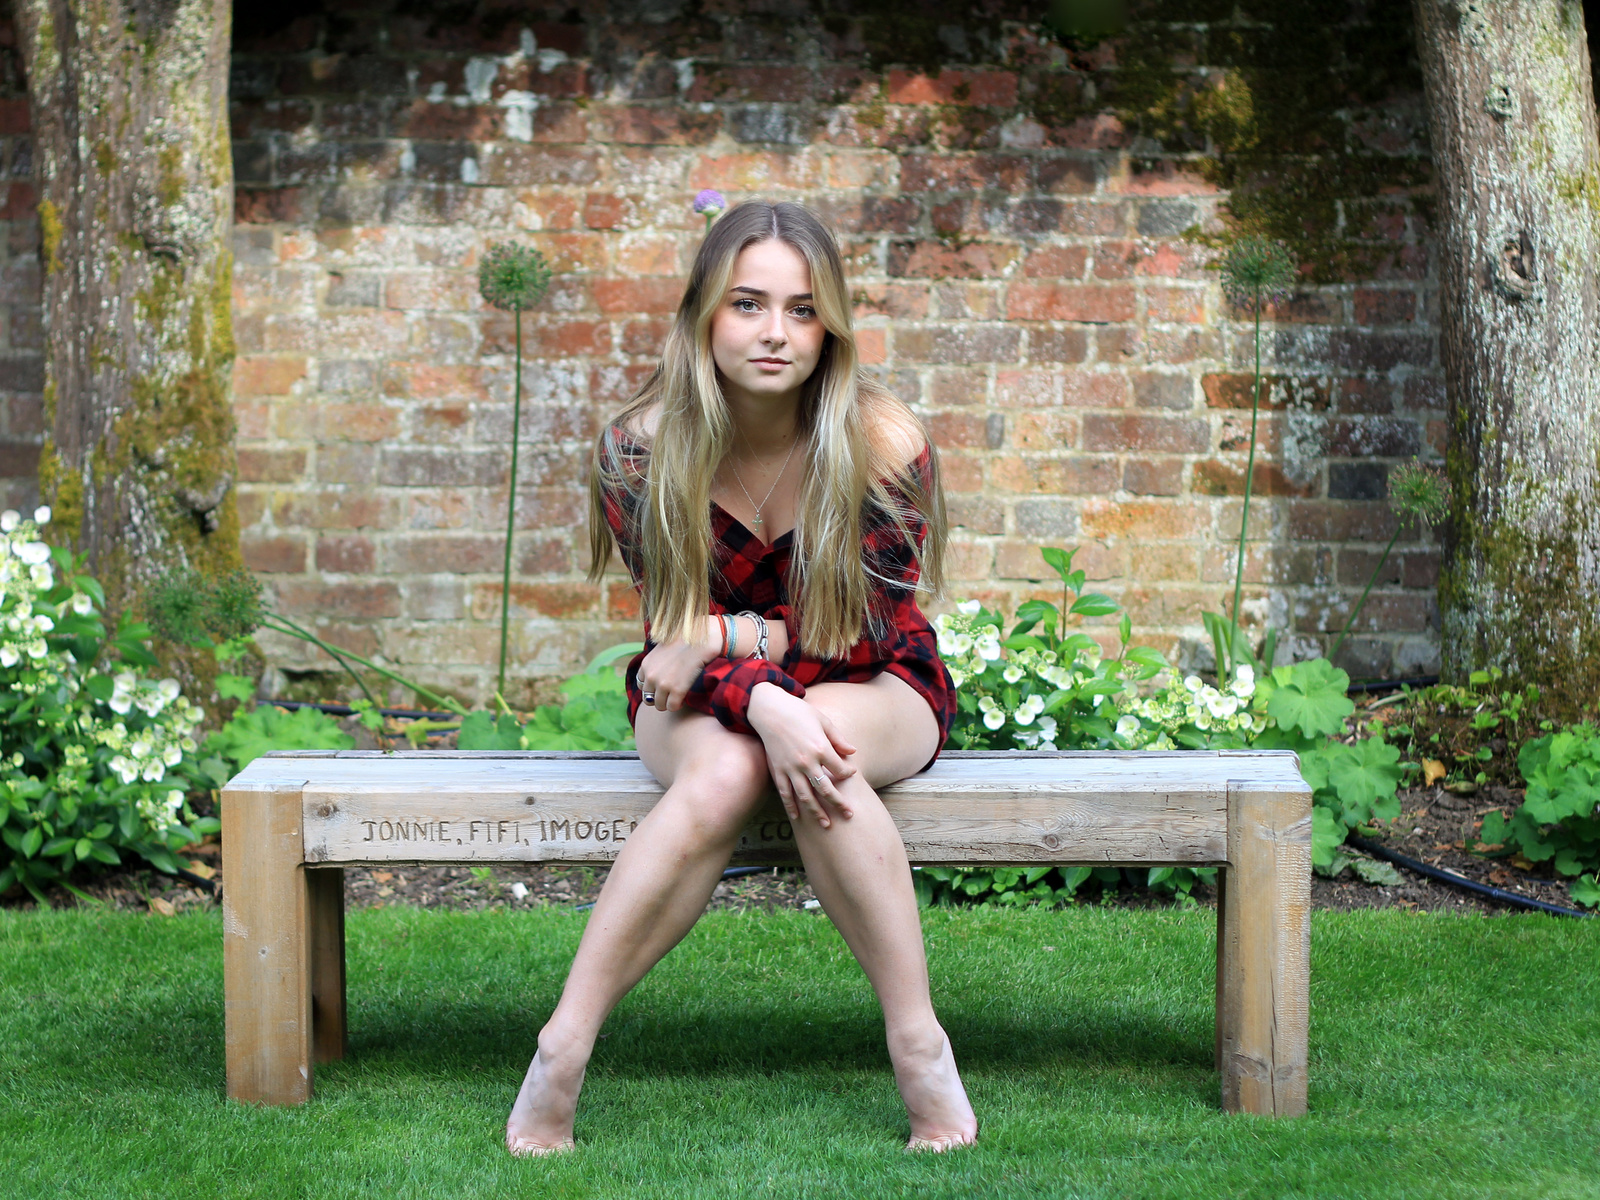 People 1600x1200 women model blonde long hair women outdoors bench barefoot sitting grass looking at viewer plaid shirt necklace bricks wall plants Connie Bowes backyard Unexpectedtales tiptoe on bench crucifix necklace pointed toes